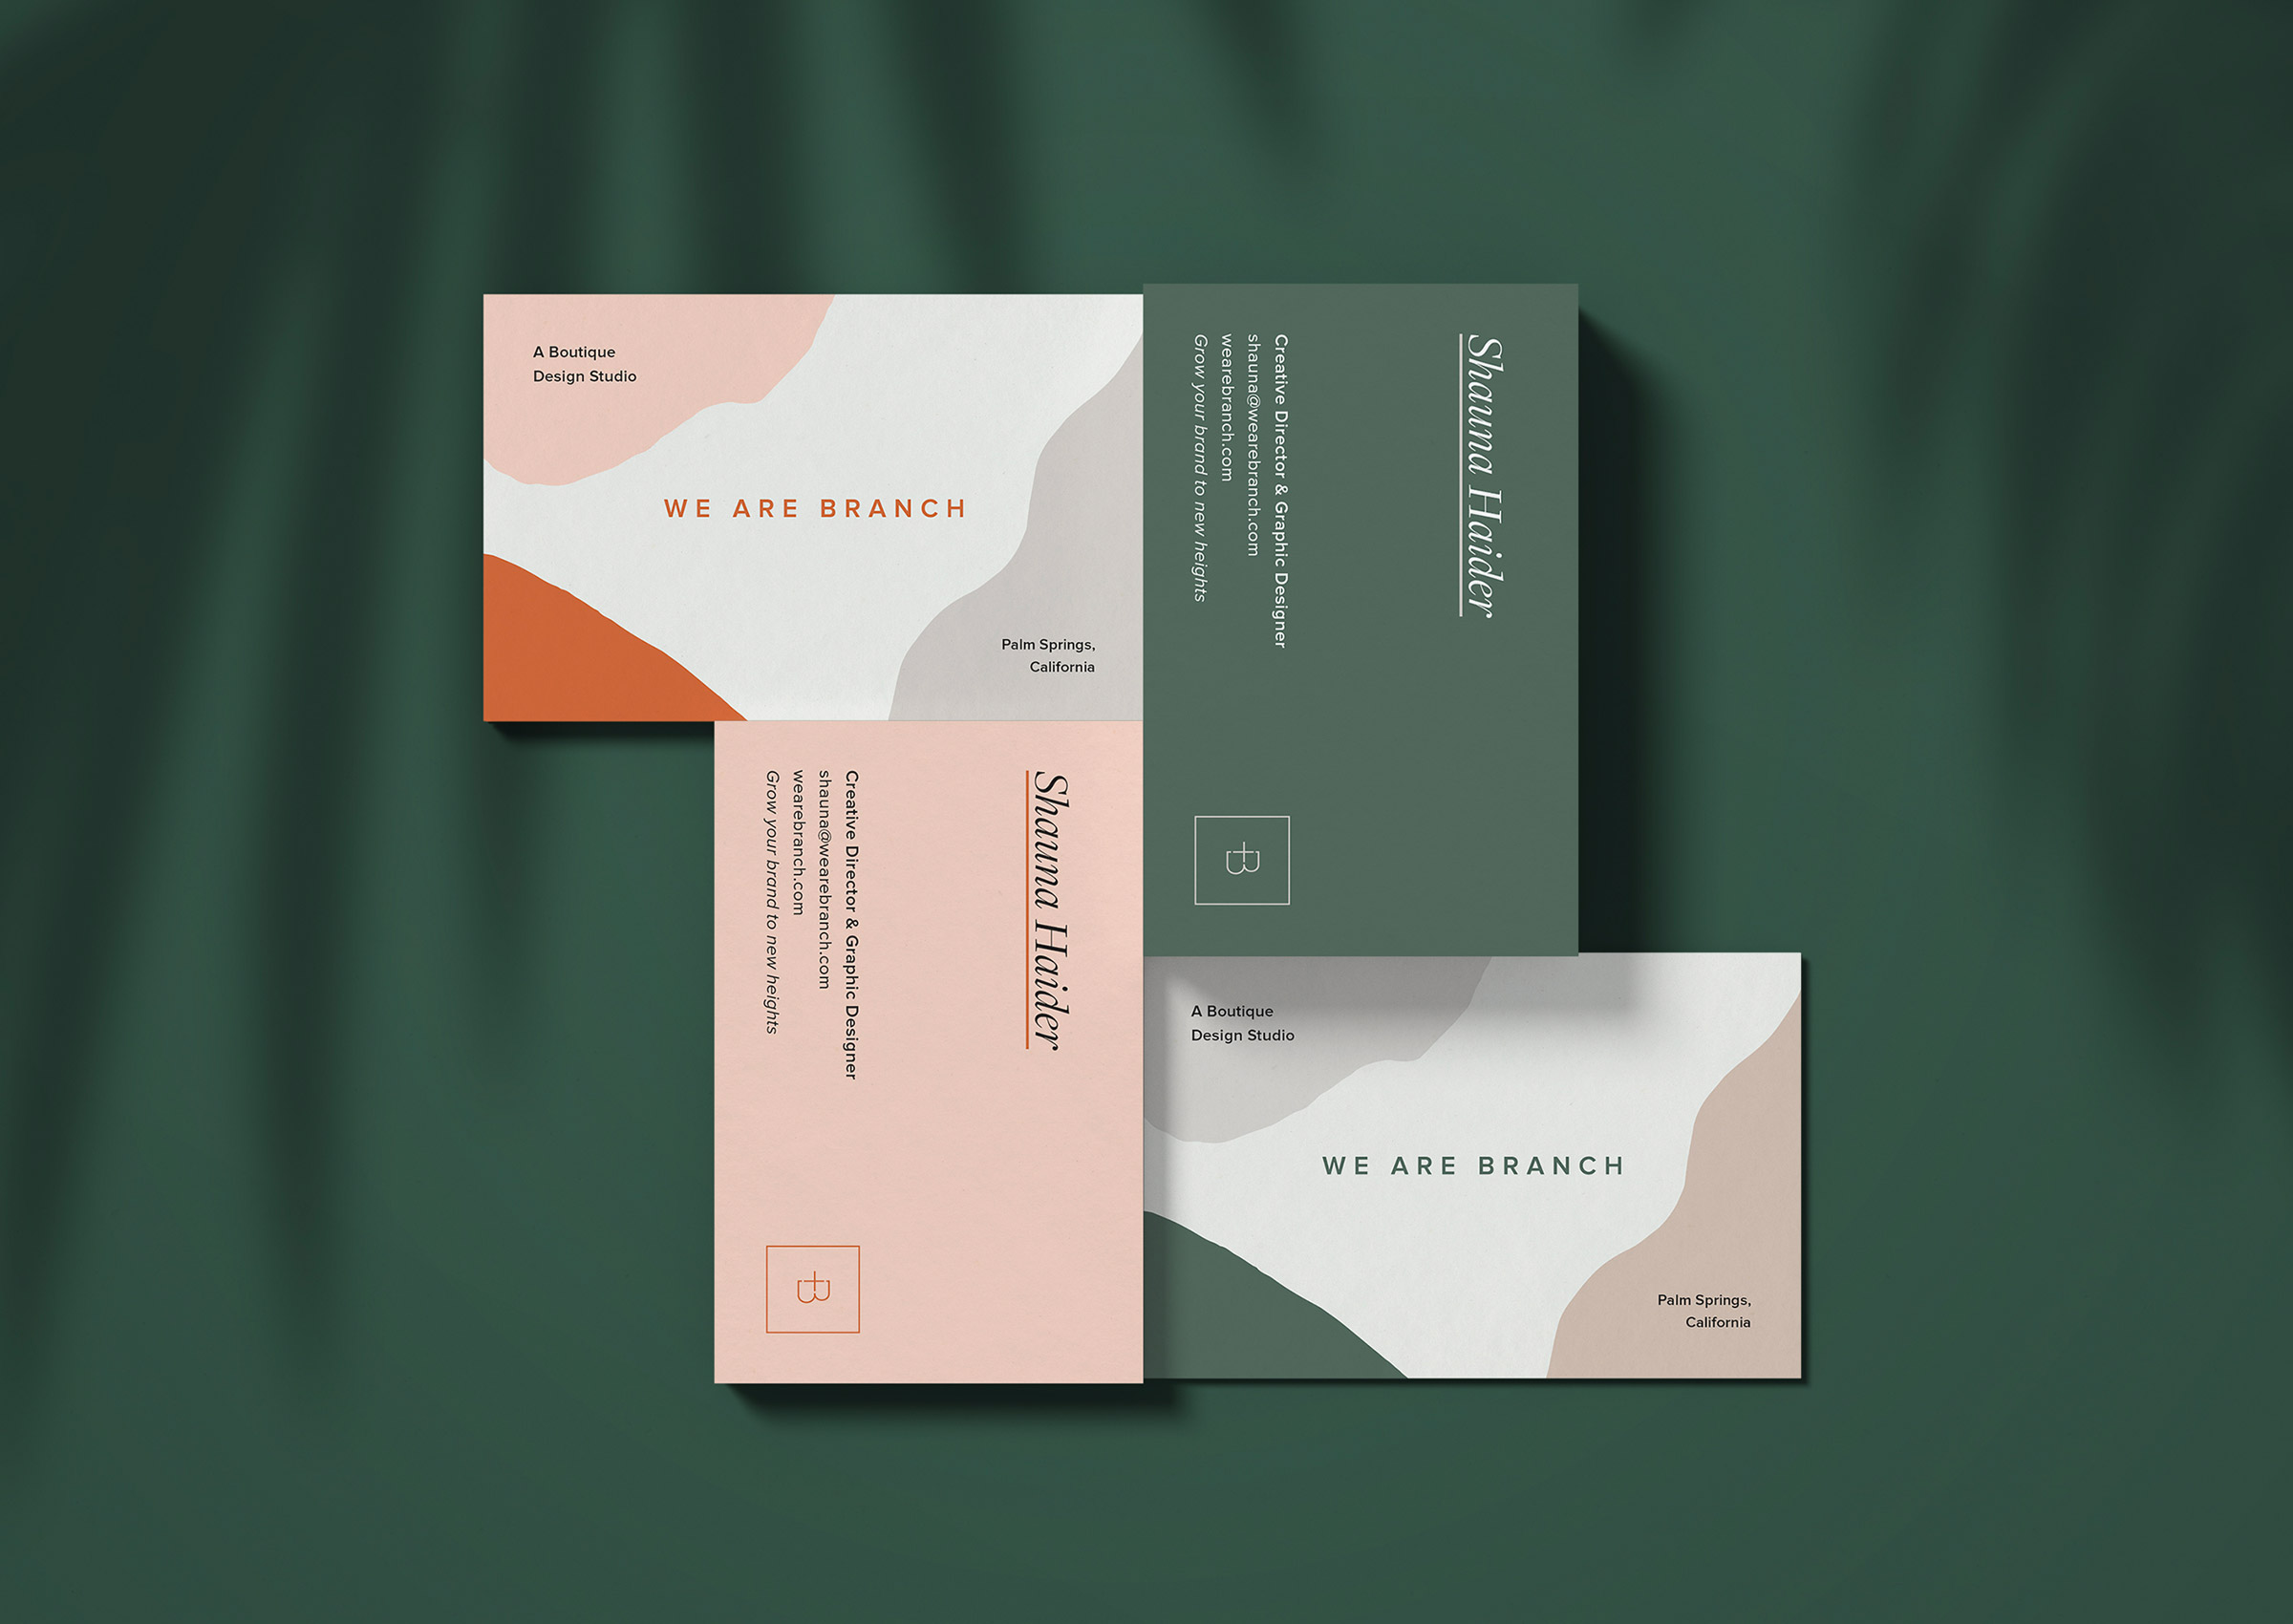 We Are Branch | 2019 Studio Collateral